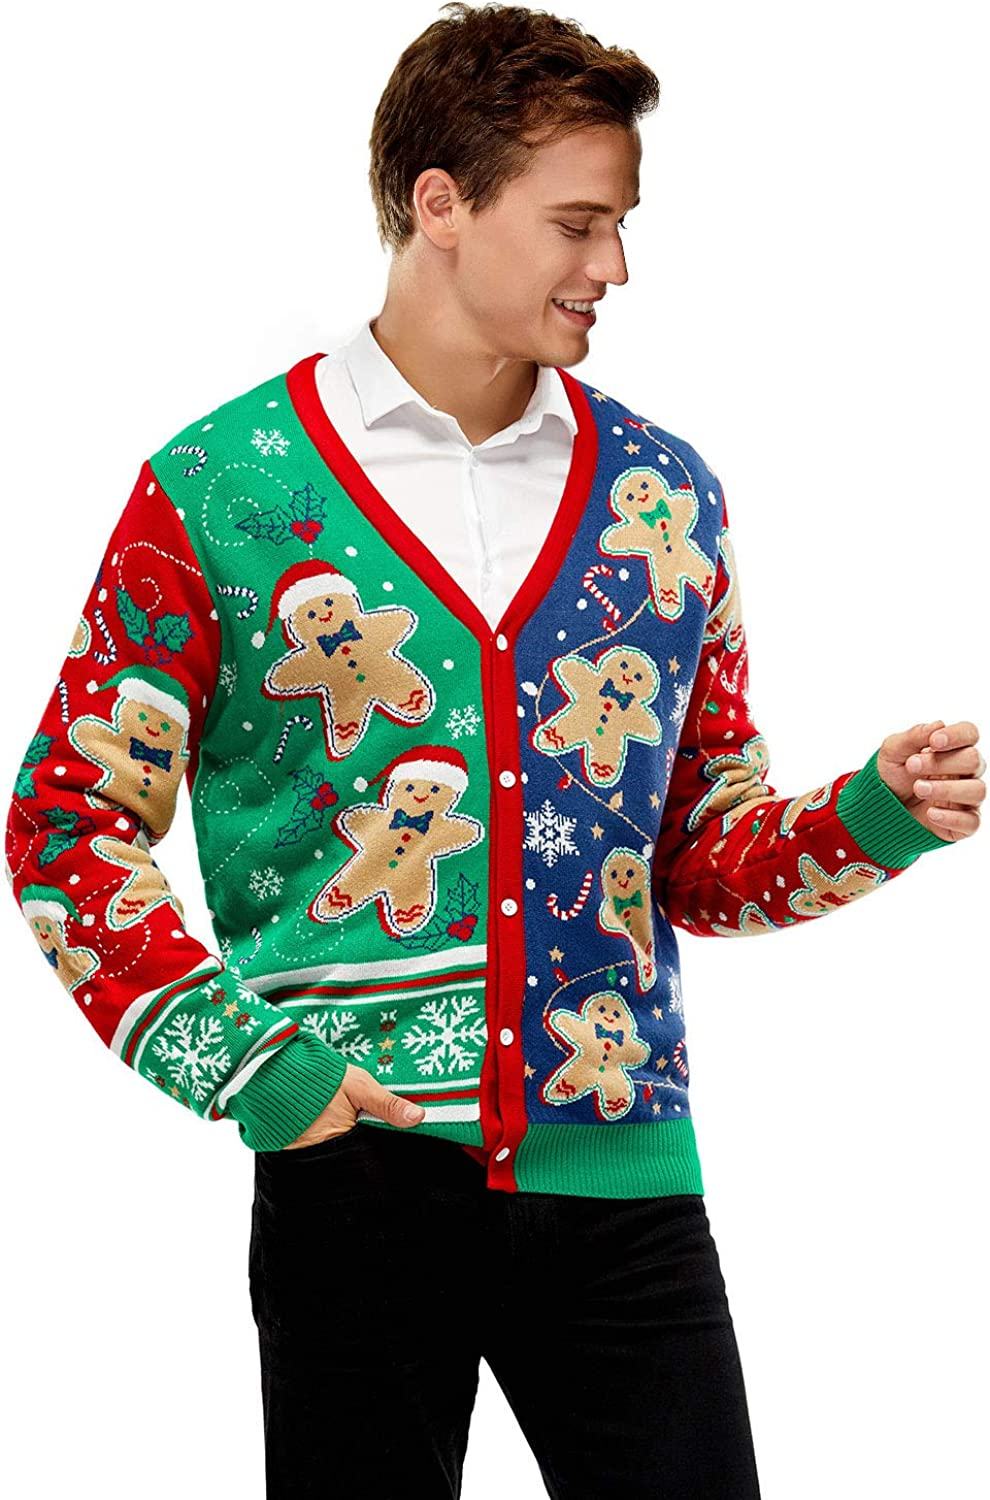 Unisex Men's Ugly Christmas Cardigan Sweater Reindeer Santa Snowman Knitted Funny Pullover for Men